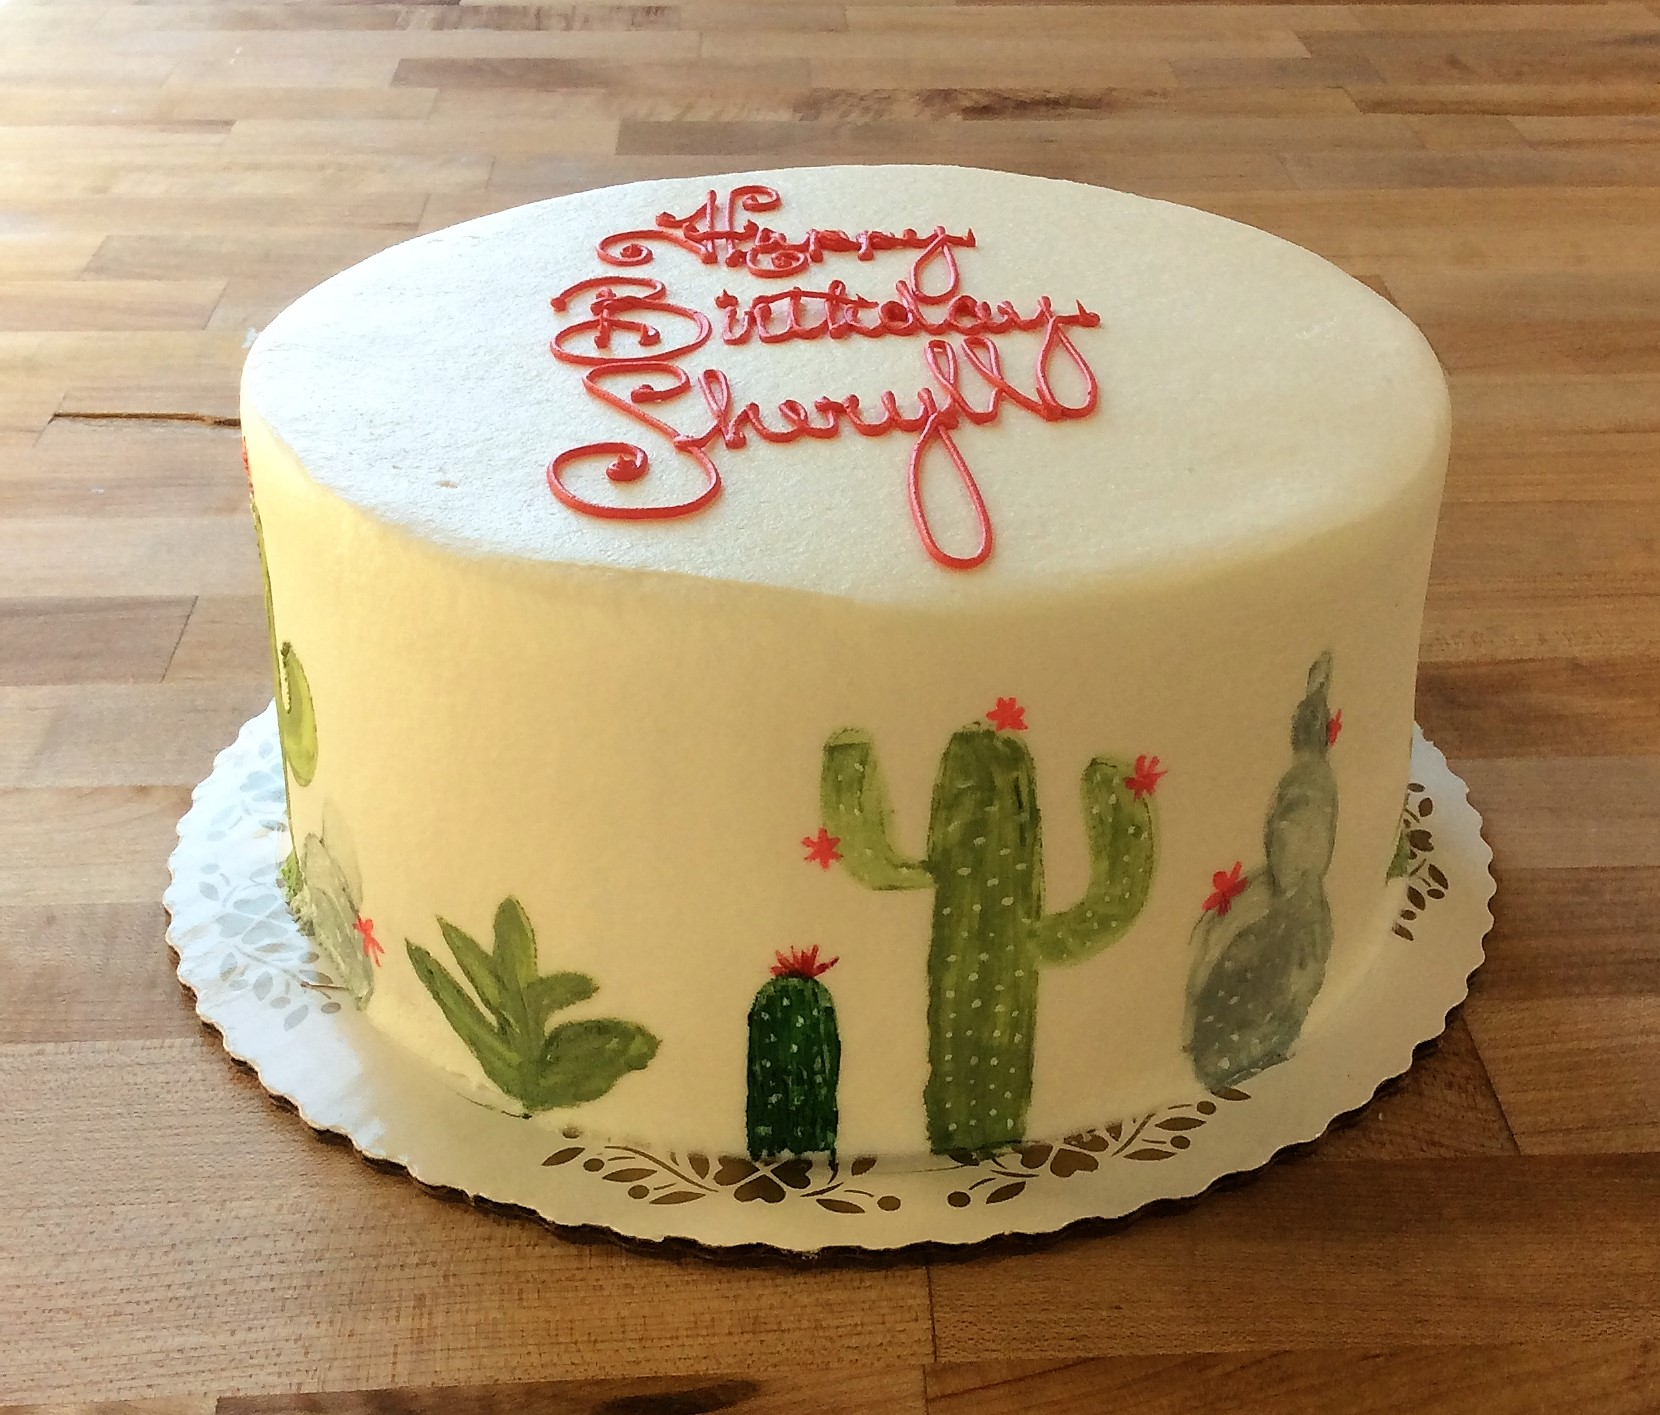 Round Cake with Painted Cactus Decoration